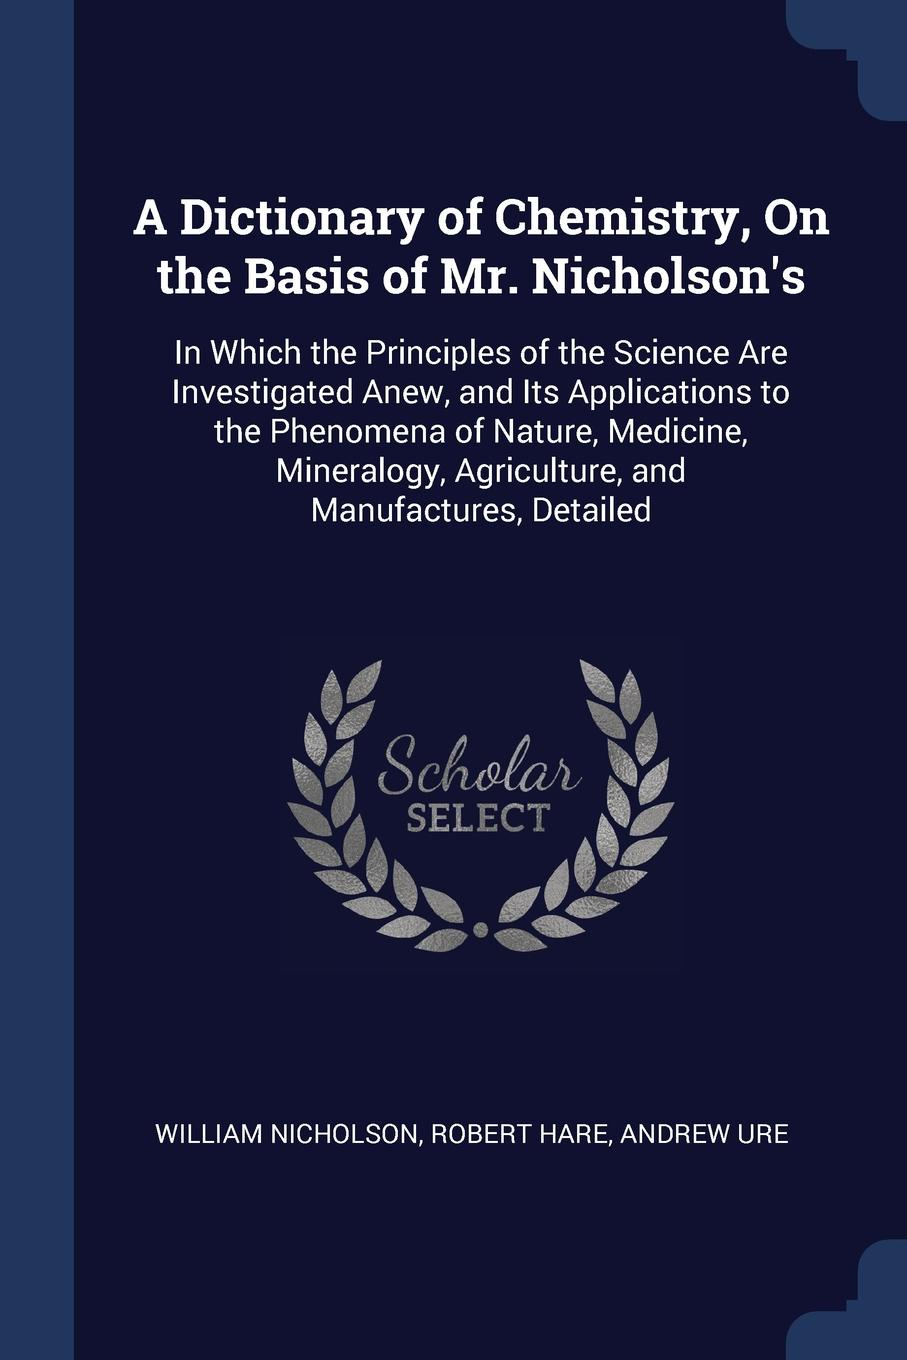 William Nicholson, Robert Hare, Andrew Ure A Dictionary of Chemistry, On the Basis Mr. N. In Which Principles Science Are Investigated Anew, and Its Applications to Phenomena Nature, Medicine, Mineralogy, Agriculture, Manufactures, Detailed